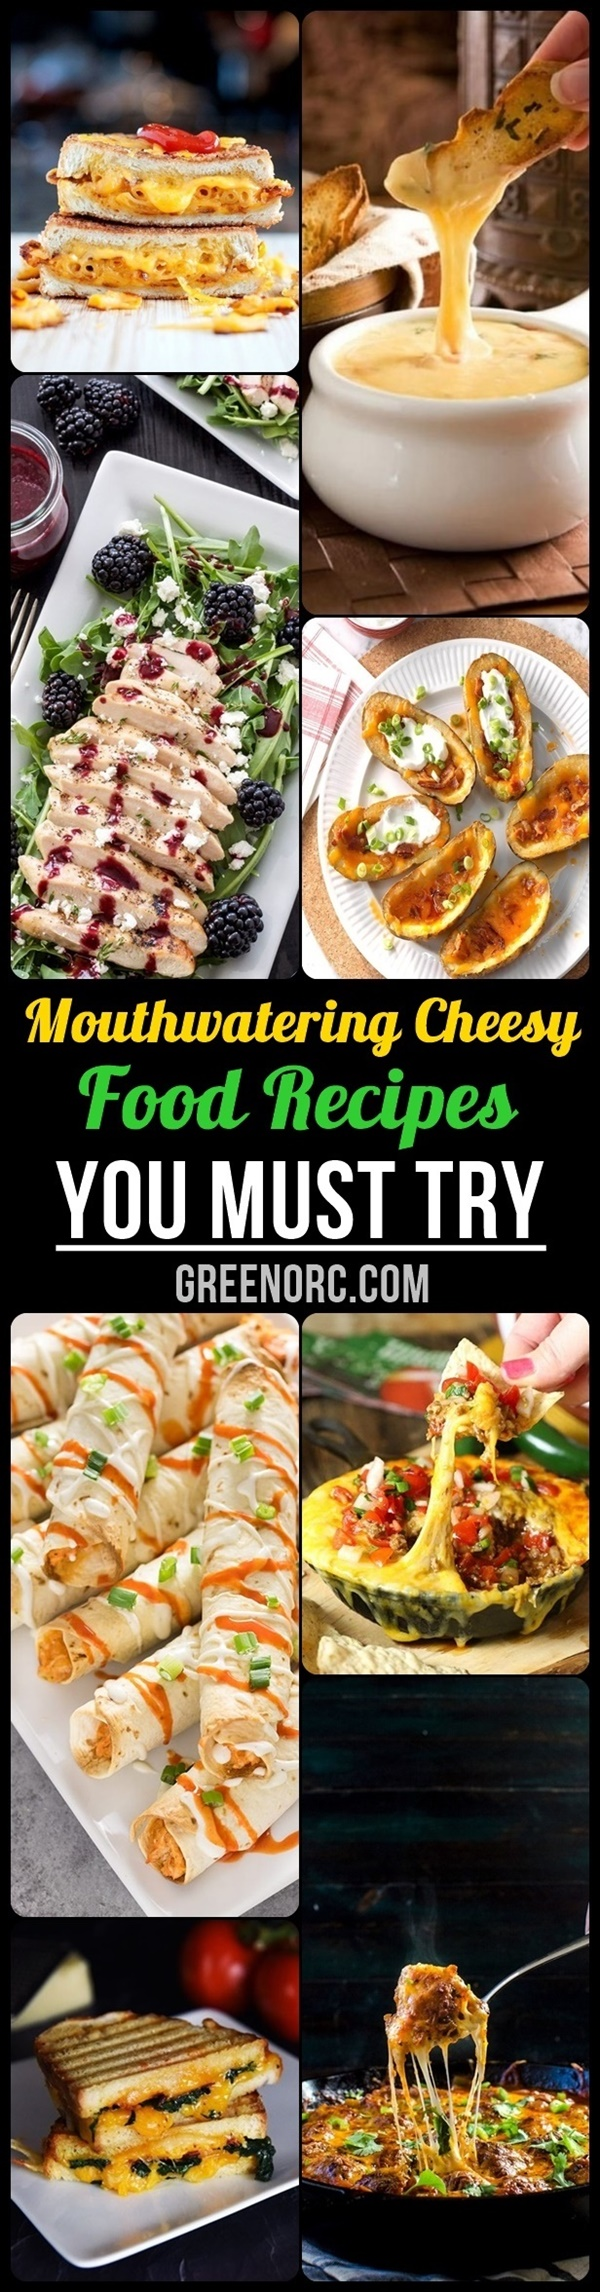 Mouthwatering Cheesy Food Recipes You Must Try